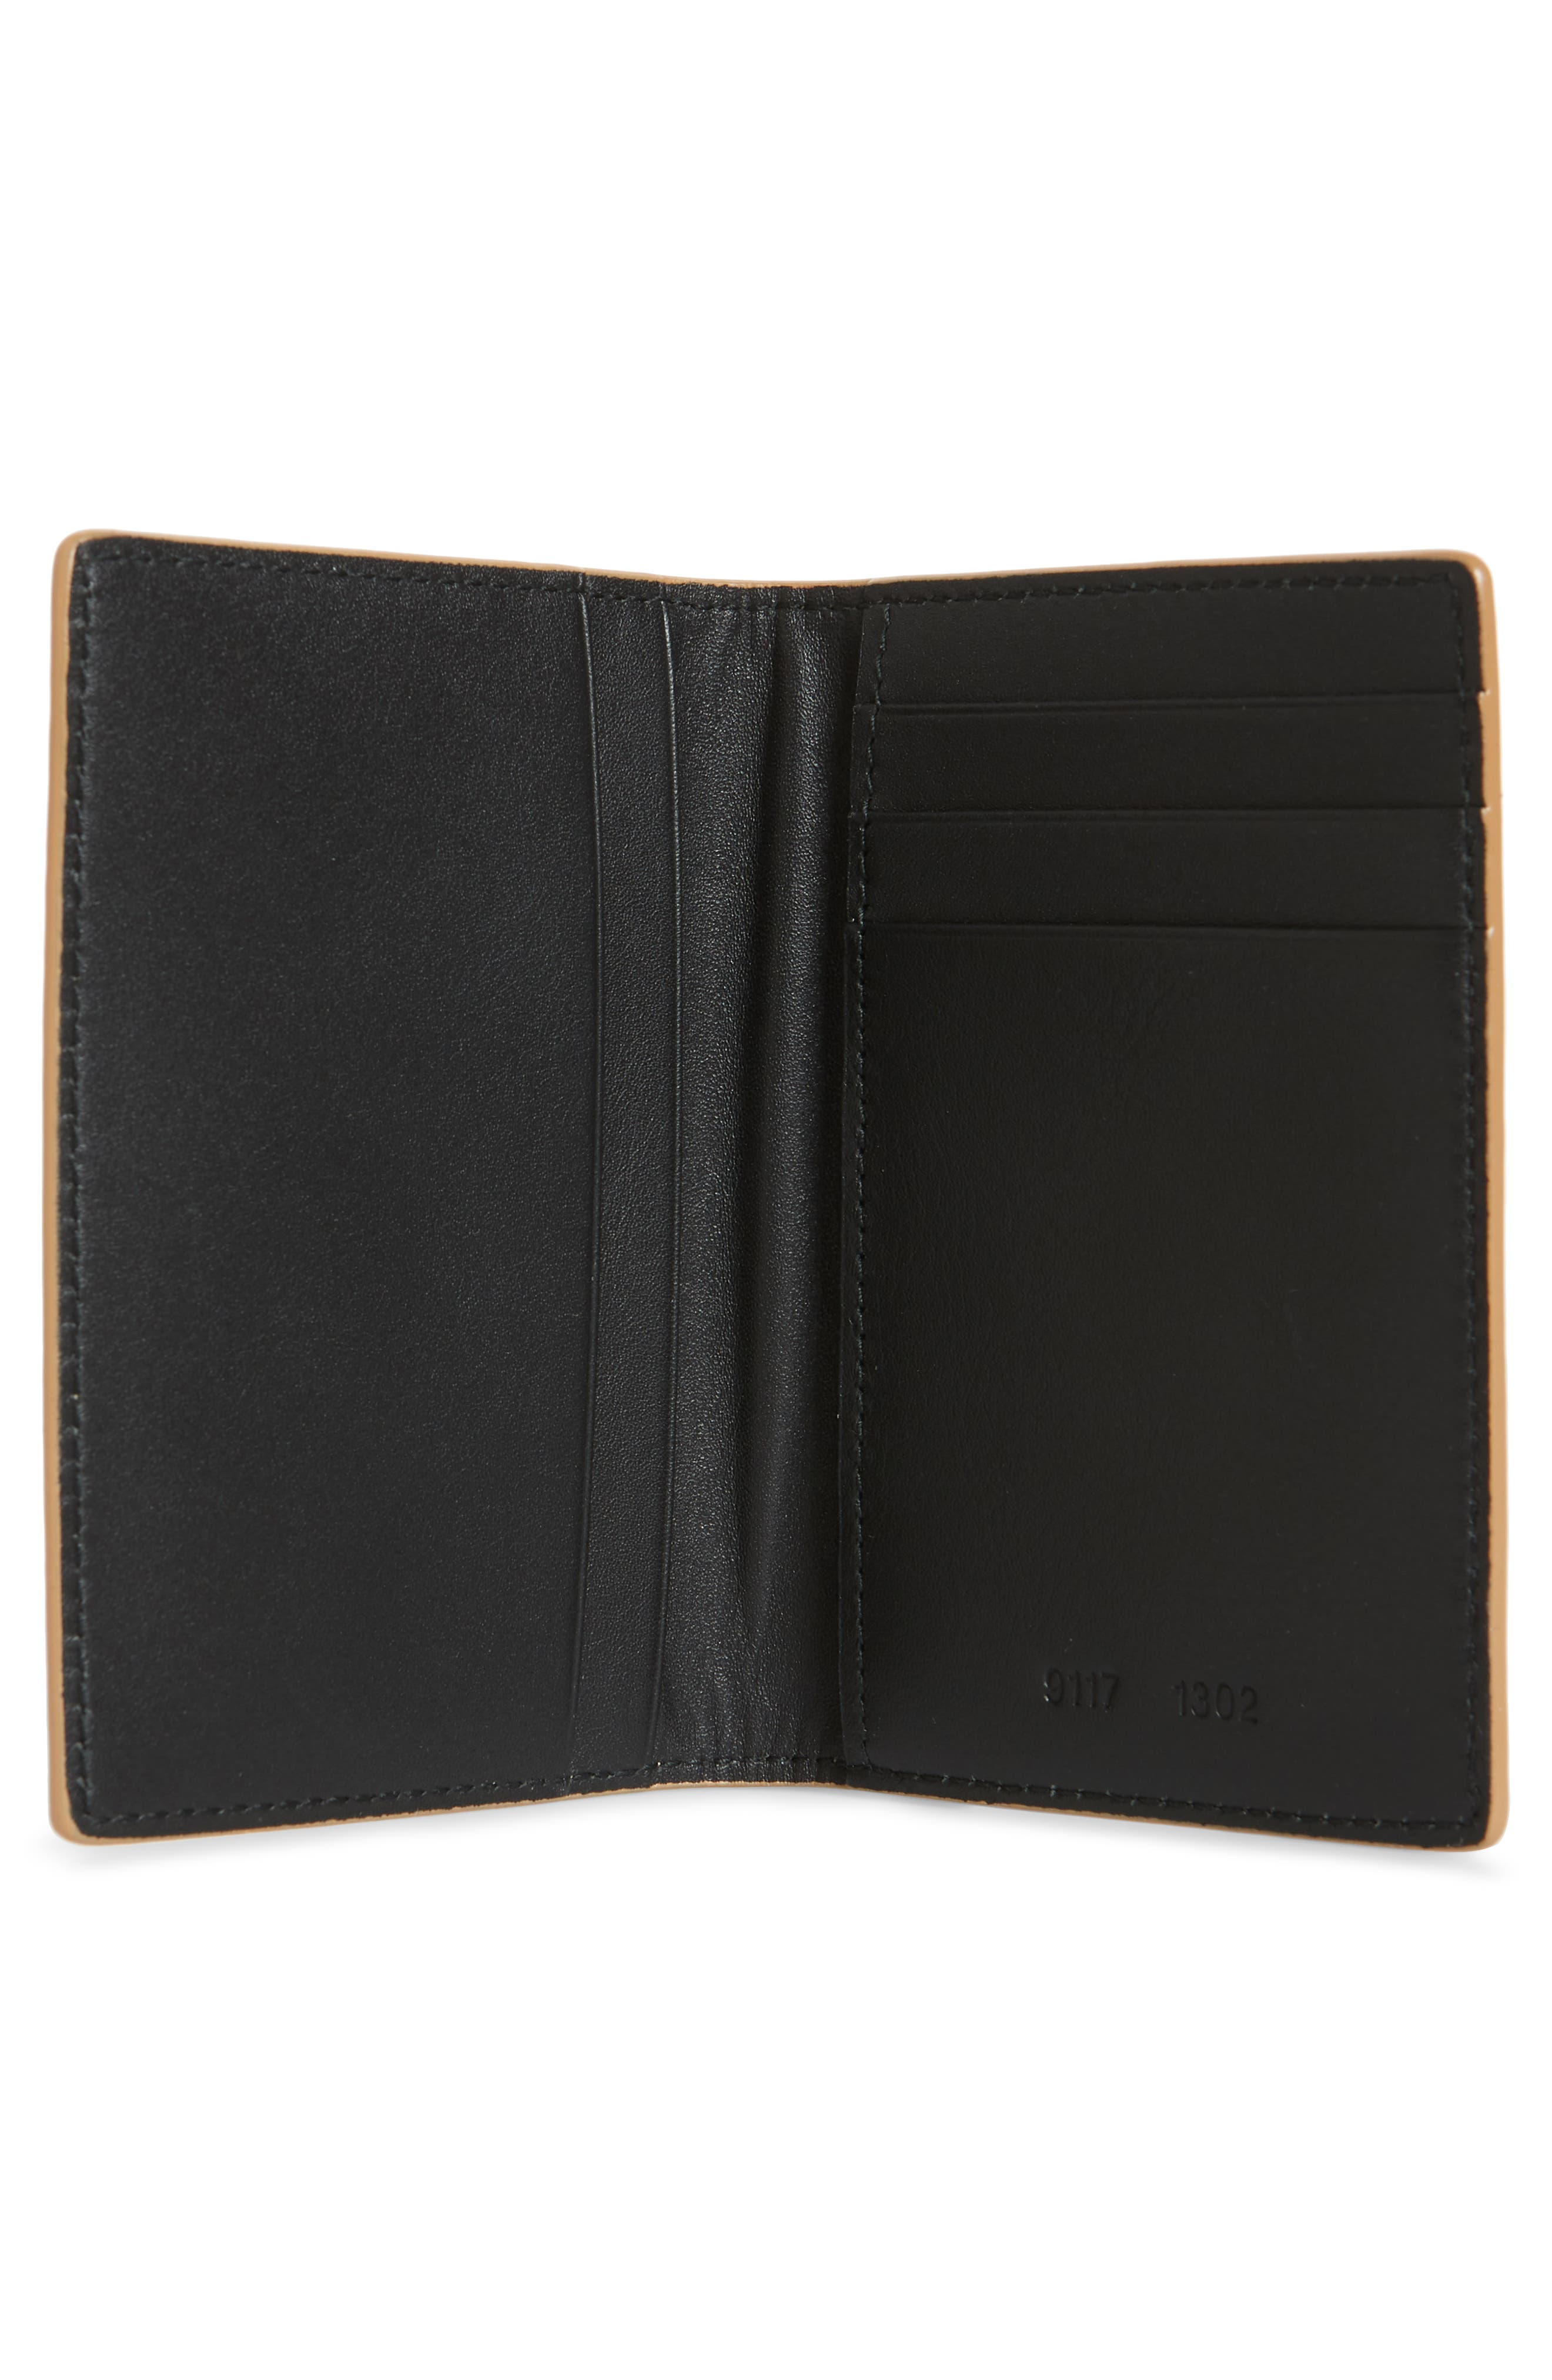 COMMON PROJECTS, Nappa Leather Folio Wallet, Alternate thumbnail 2, color, 250